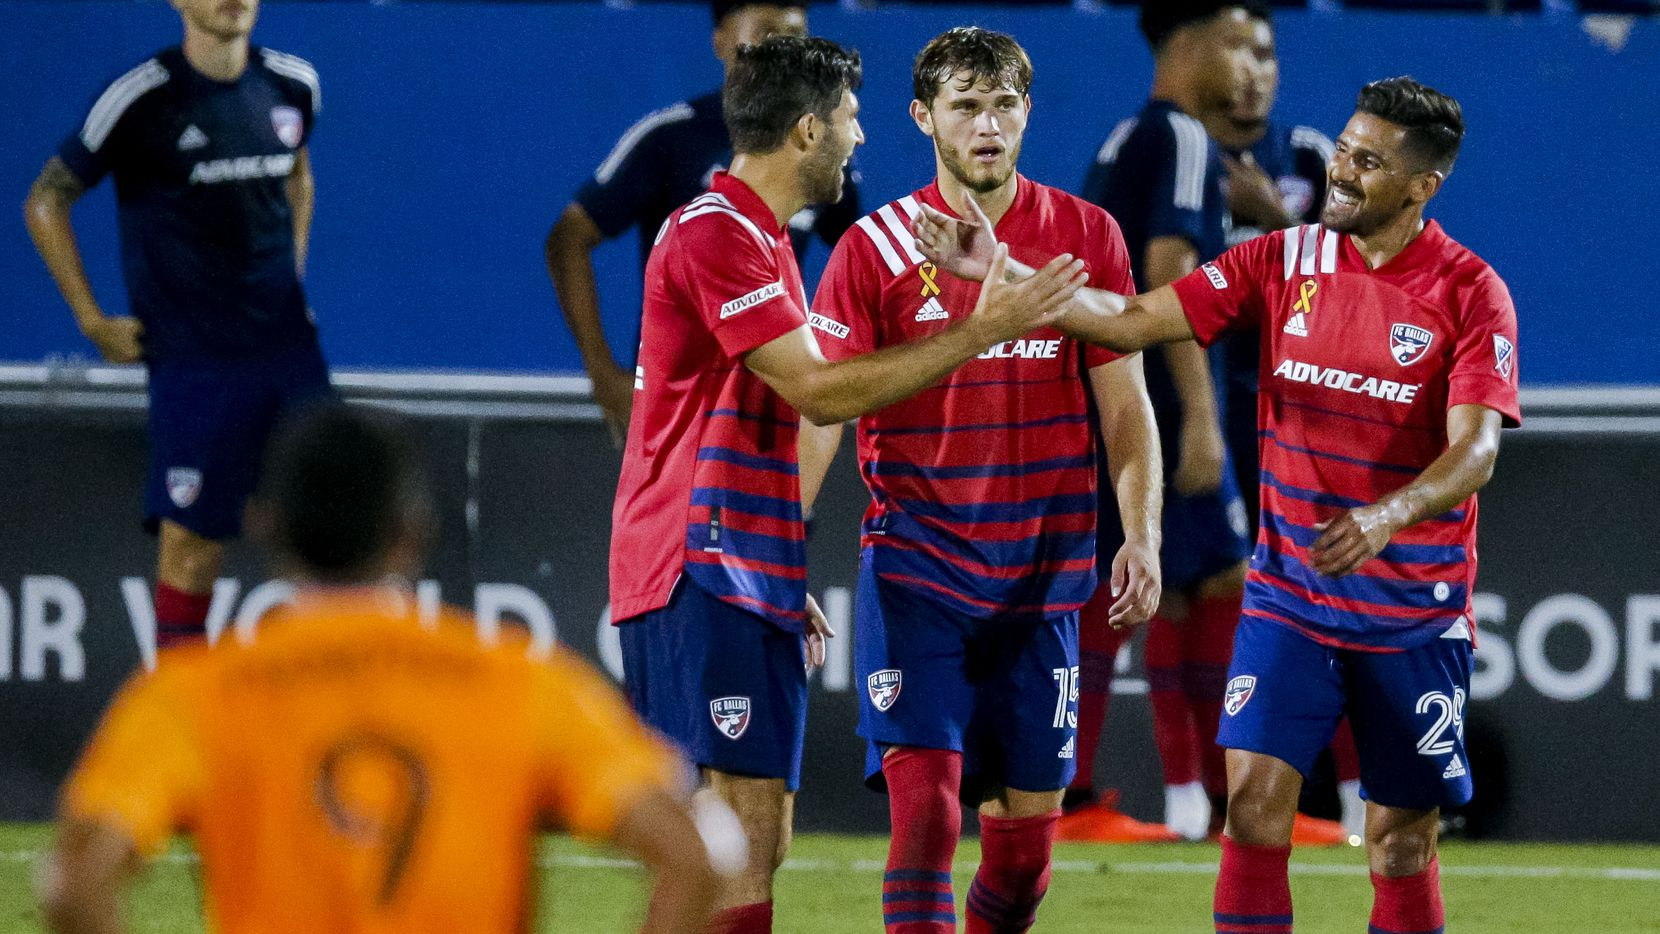 FC Dallas attacker Franco Jara , right, is congratulated by midfielder Ryan Hollingshead (12) after scoring a goal during the second half of an MLS soccer match against the Houston Dynamo at Toyota Stadium in Frisco, Saturday, September 12, 2020. FC Dallas won 2-1.